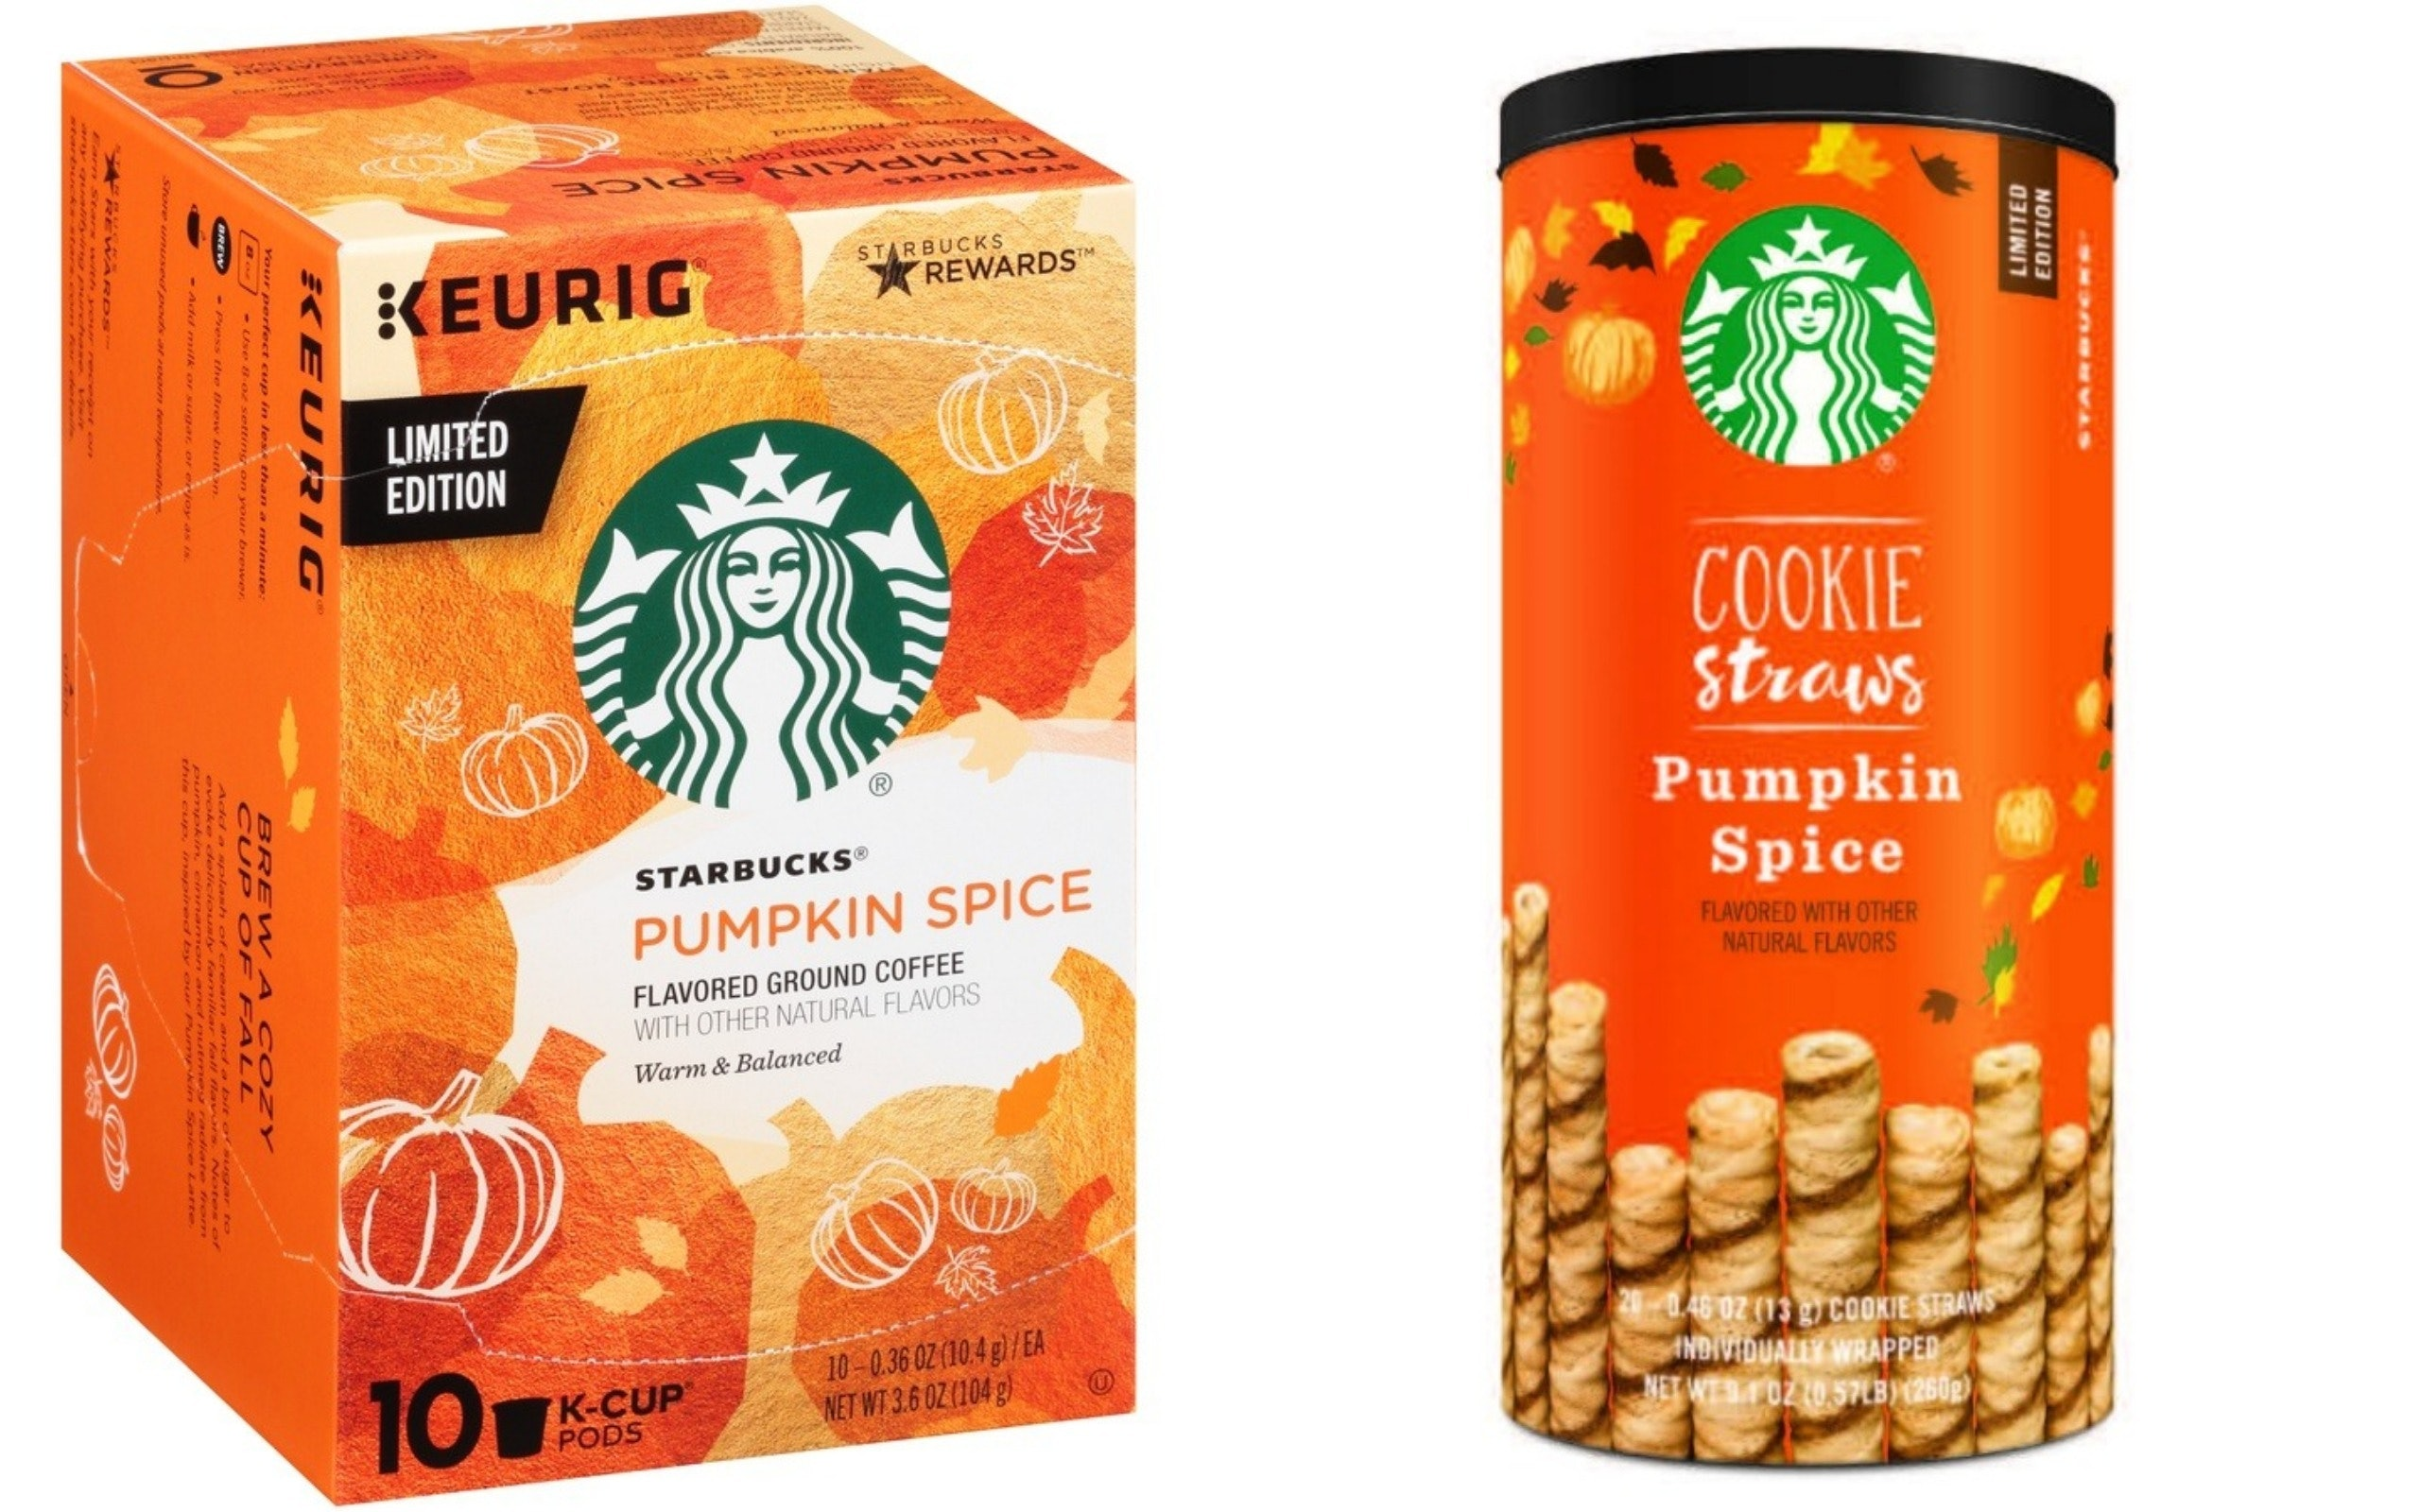 11fd9a19a57 Starbucks Pumpkin Spice Latte Products In Grocery Stores Are Expanding    They All Sound Delicious